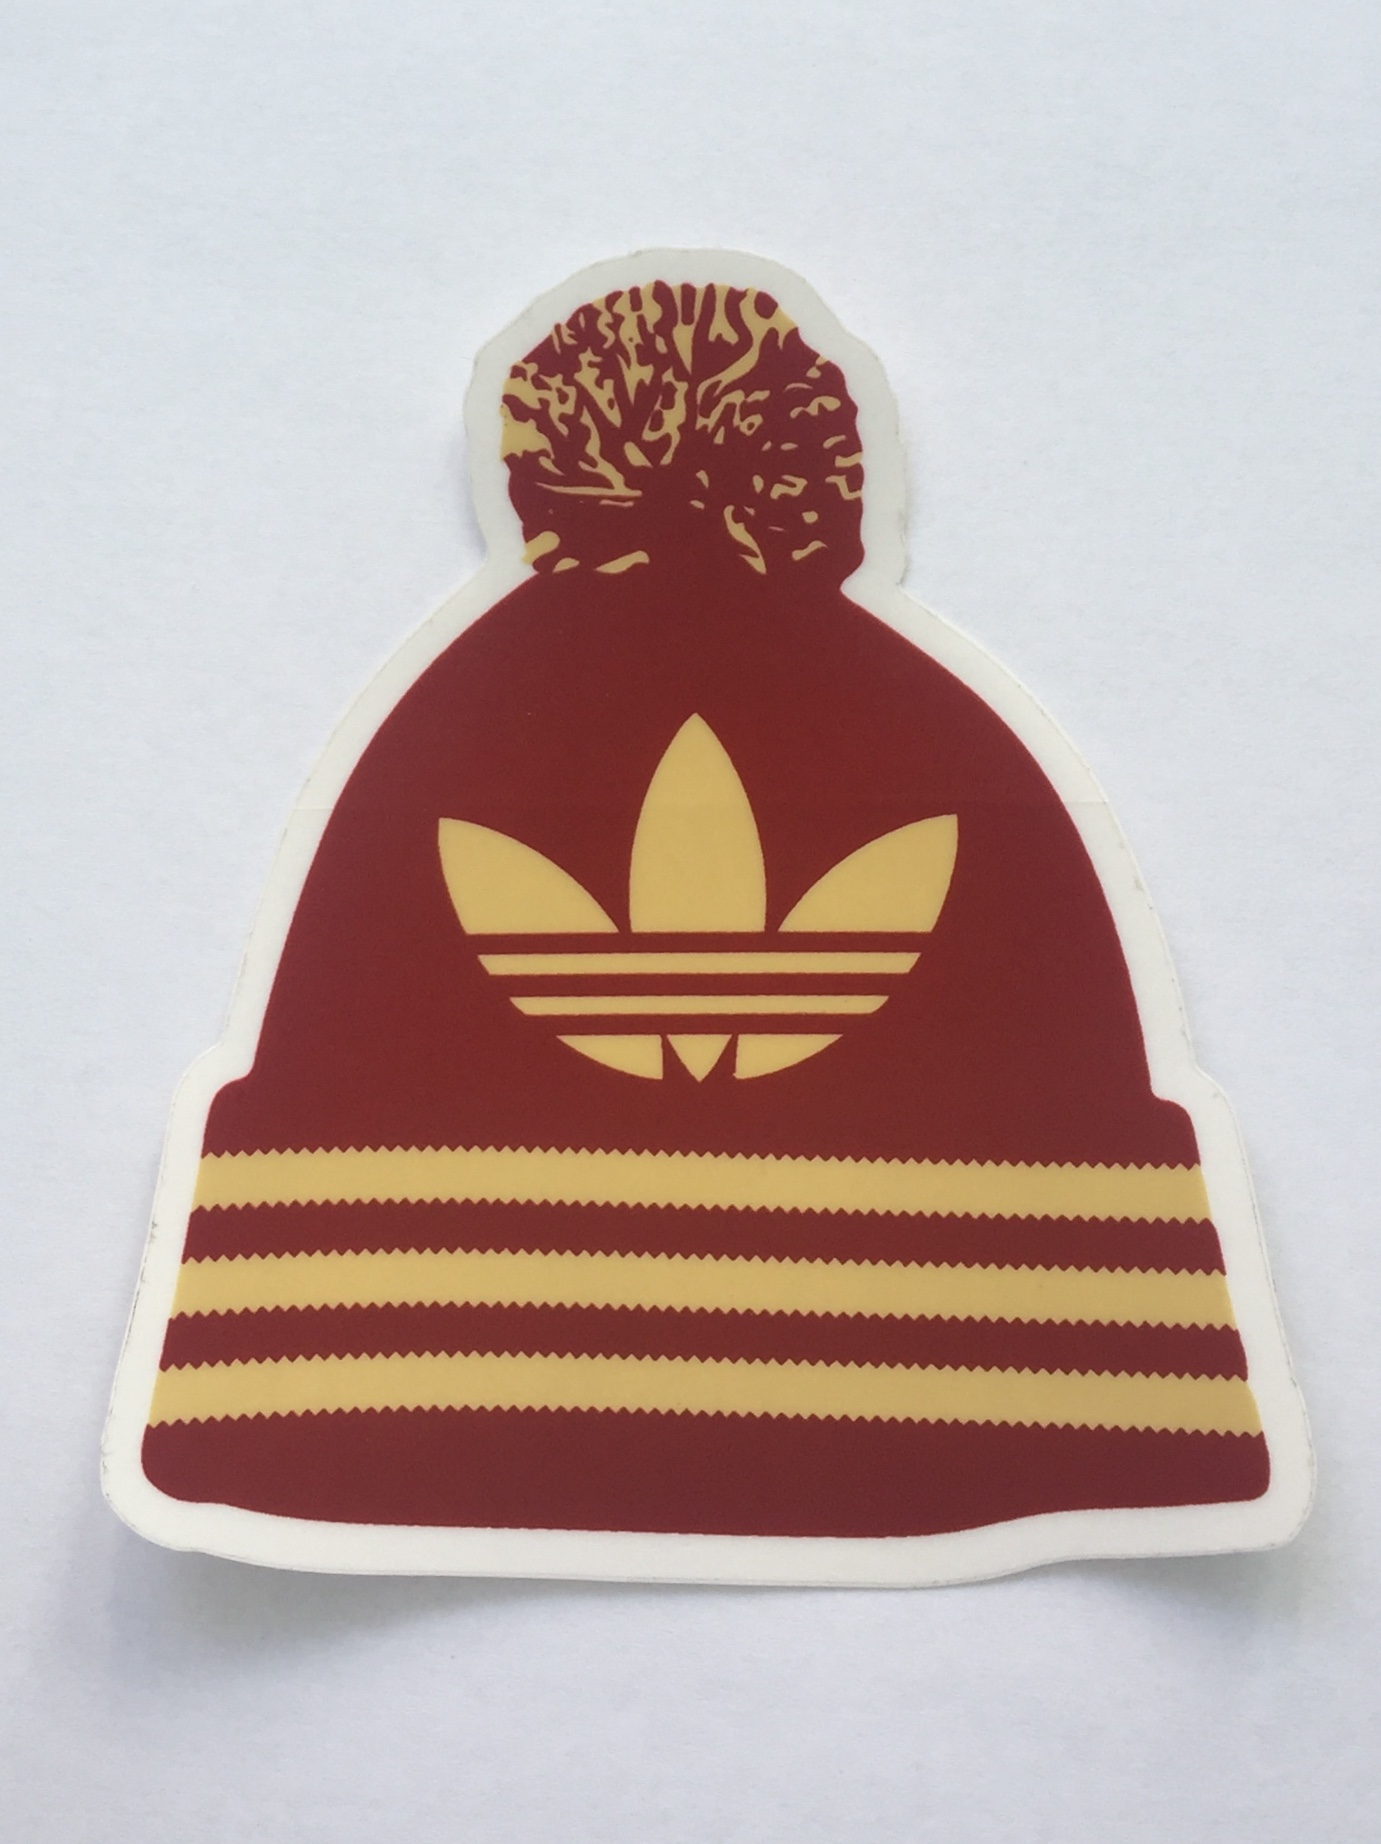 Details about Adidas Beanie Sticker Burgundy Gold 4.5inch ace95aab4cf